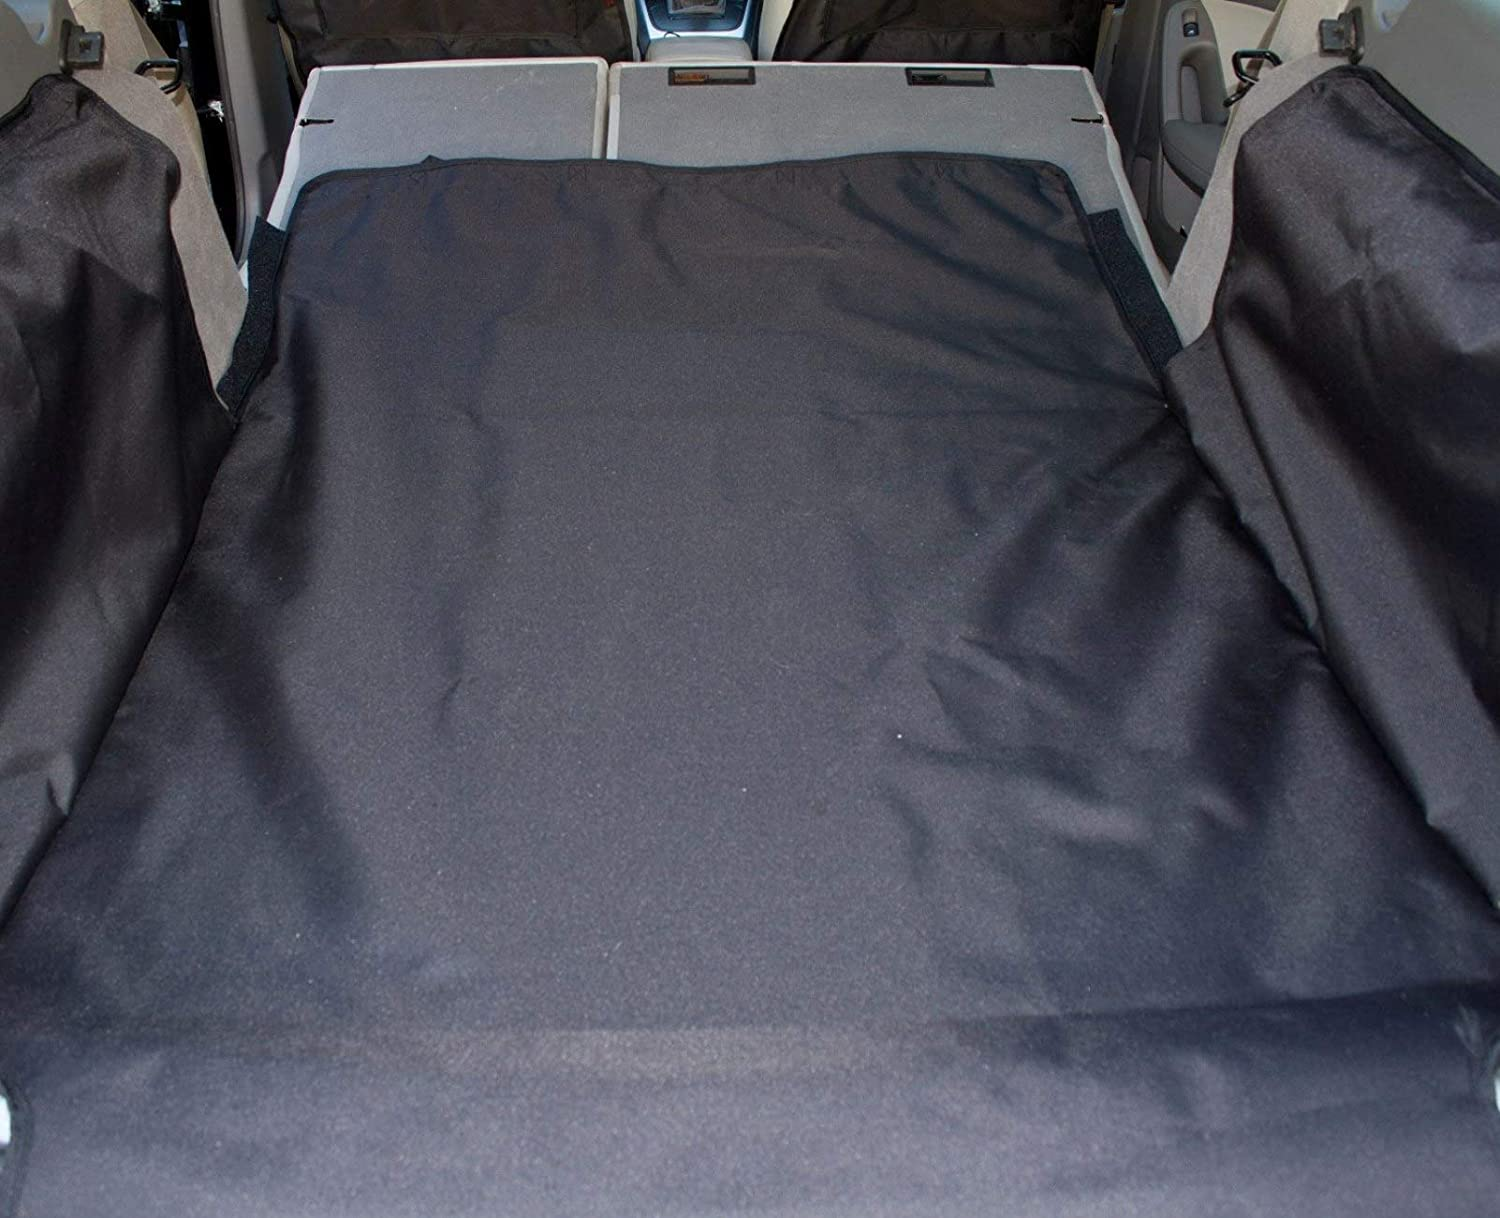 Travelsmart 40133 Car Boot Liner and Bumper Flap to fit BMW I3